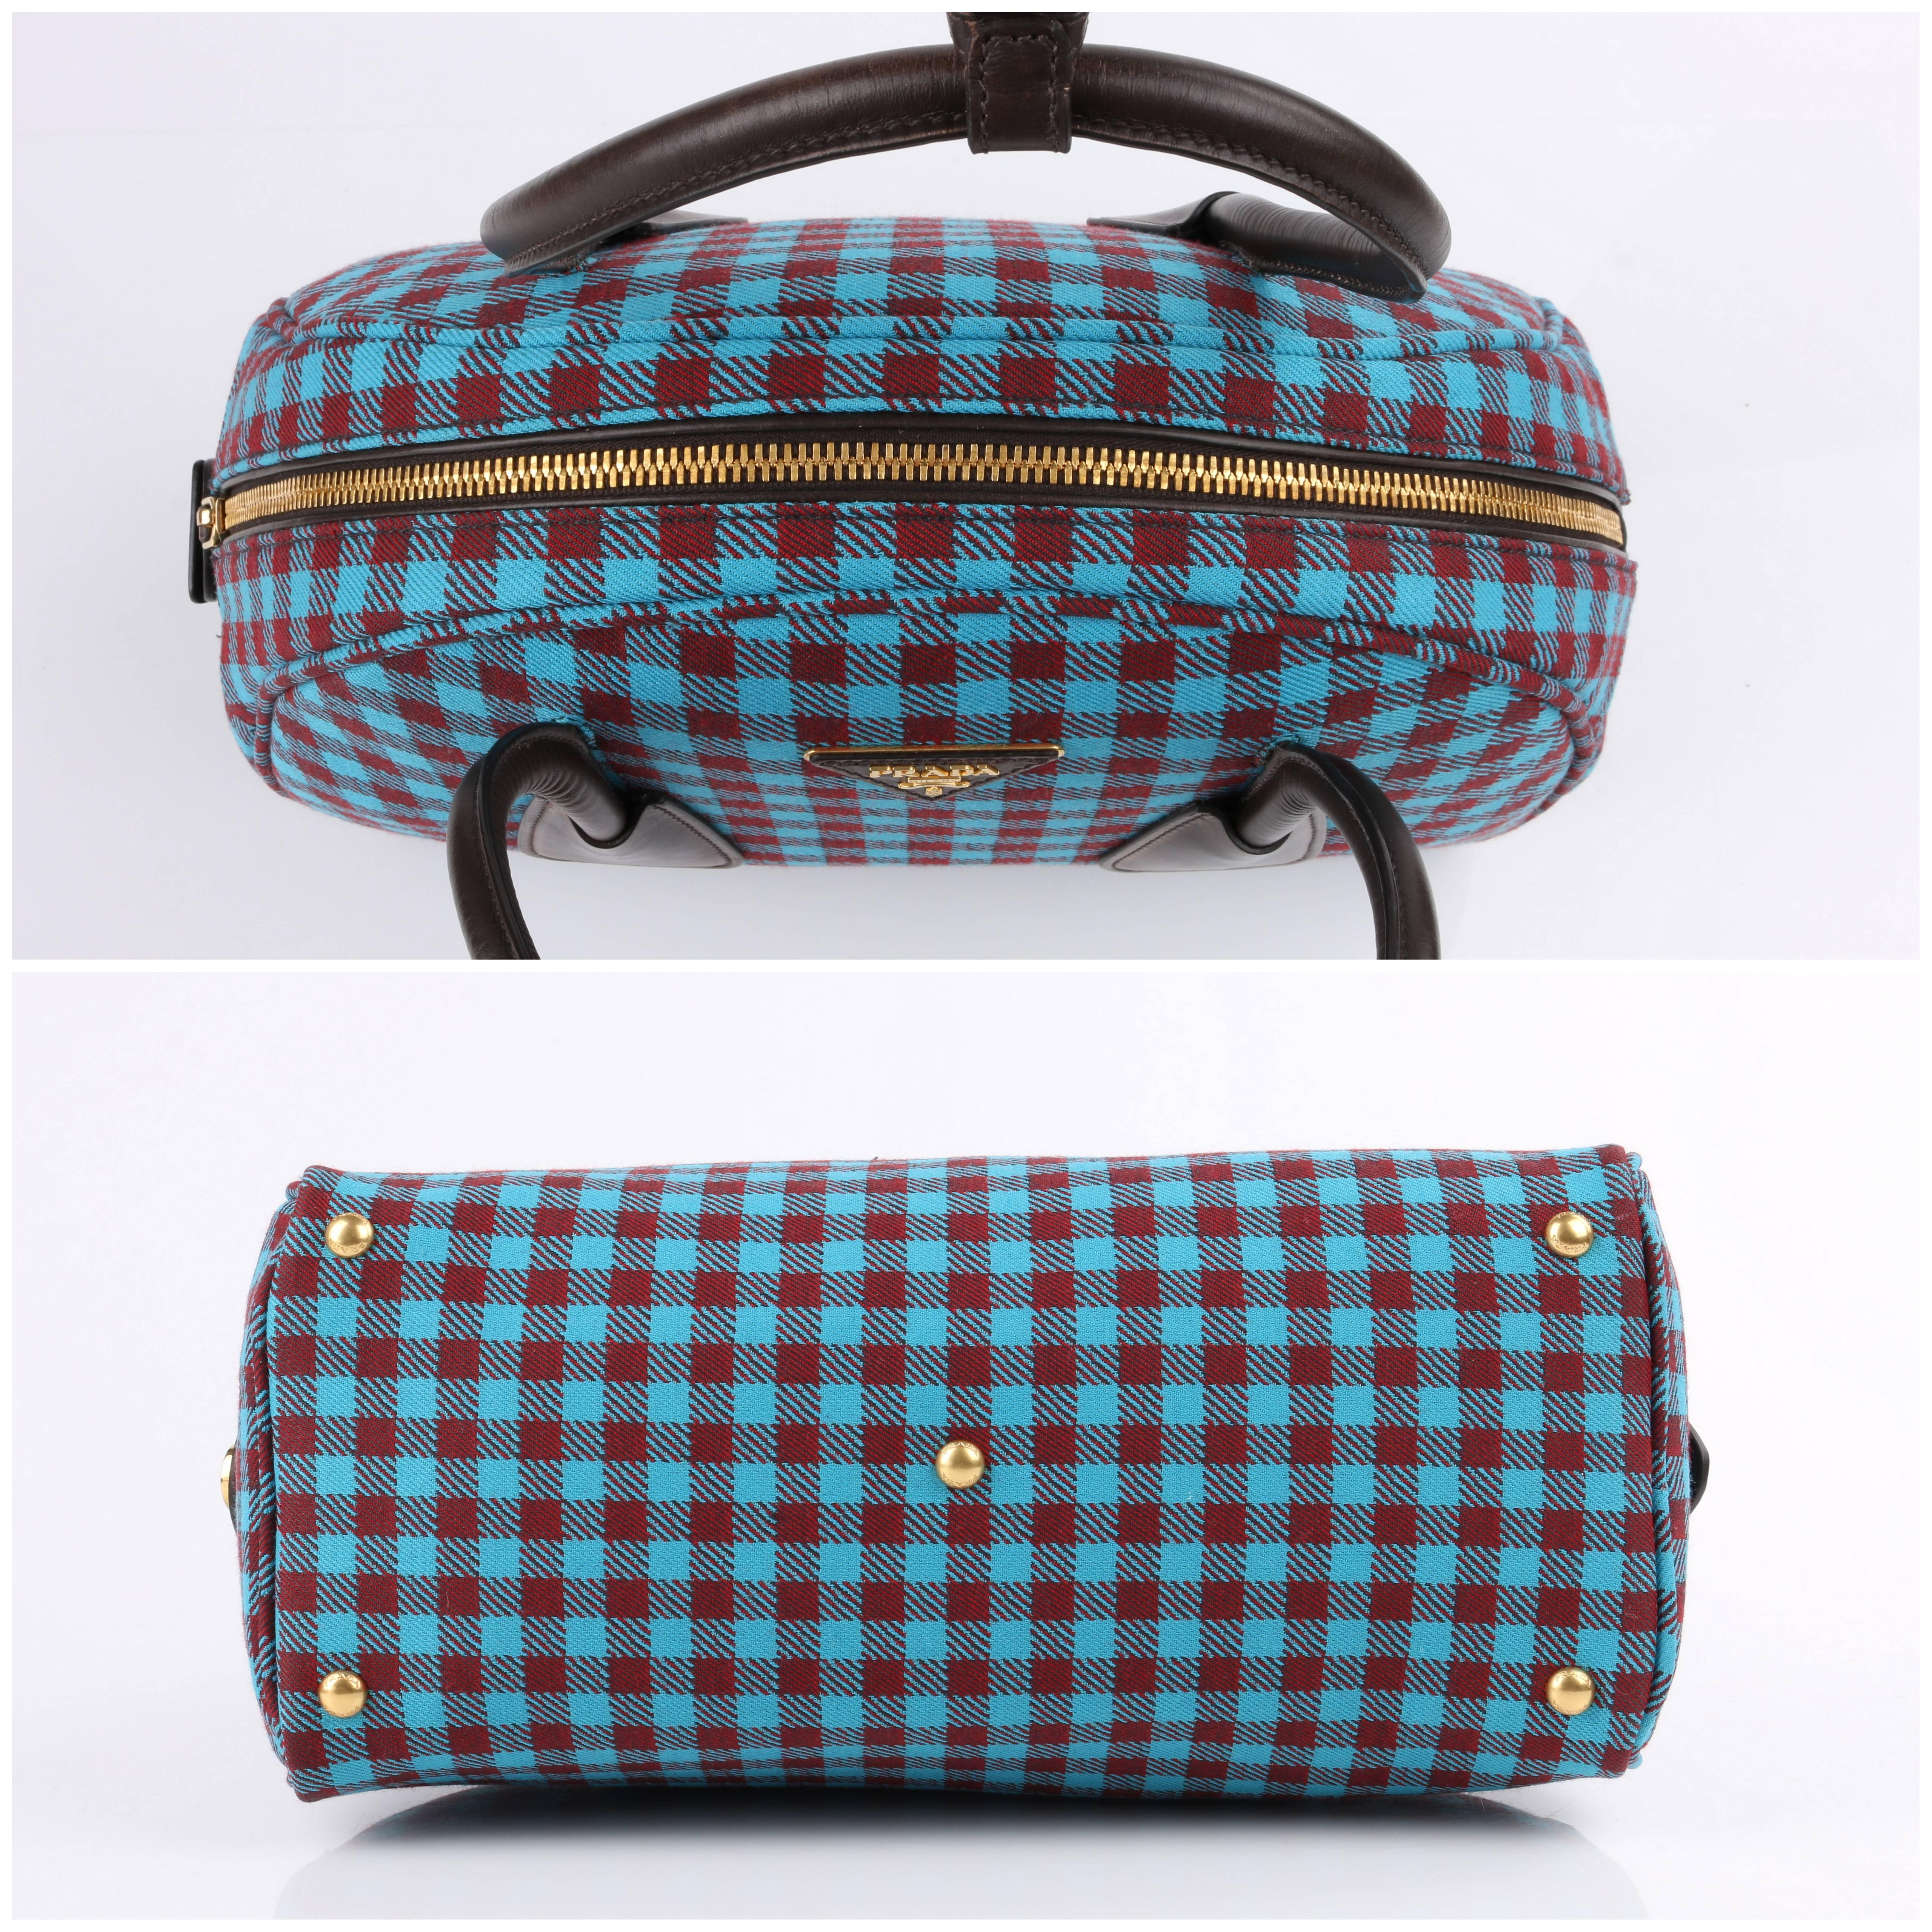 Prada A/w 2013 vichy Check Jacquard Turquoise & Red Gingham Bowler Bag Purse 9ZFrbAe3g